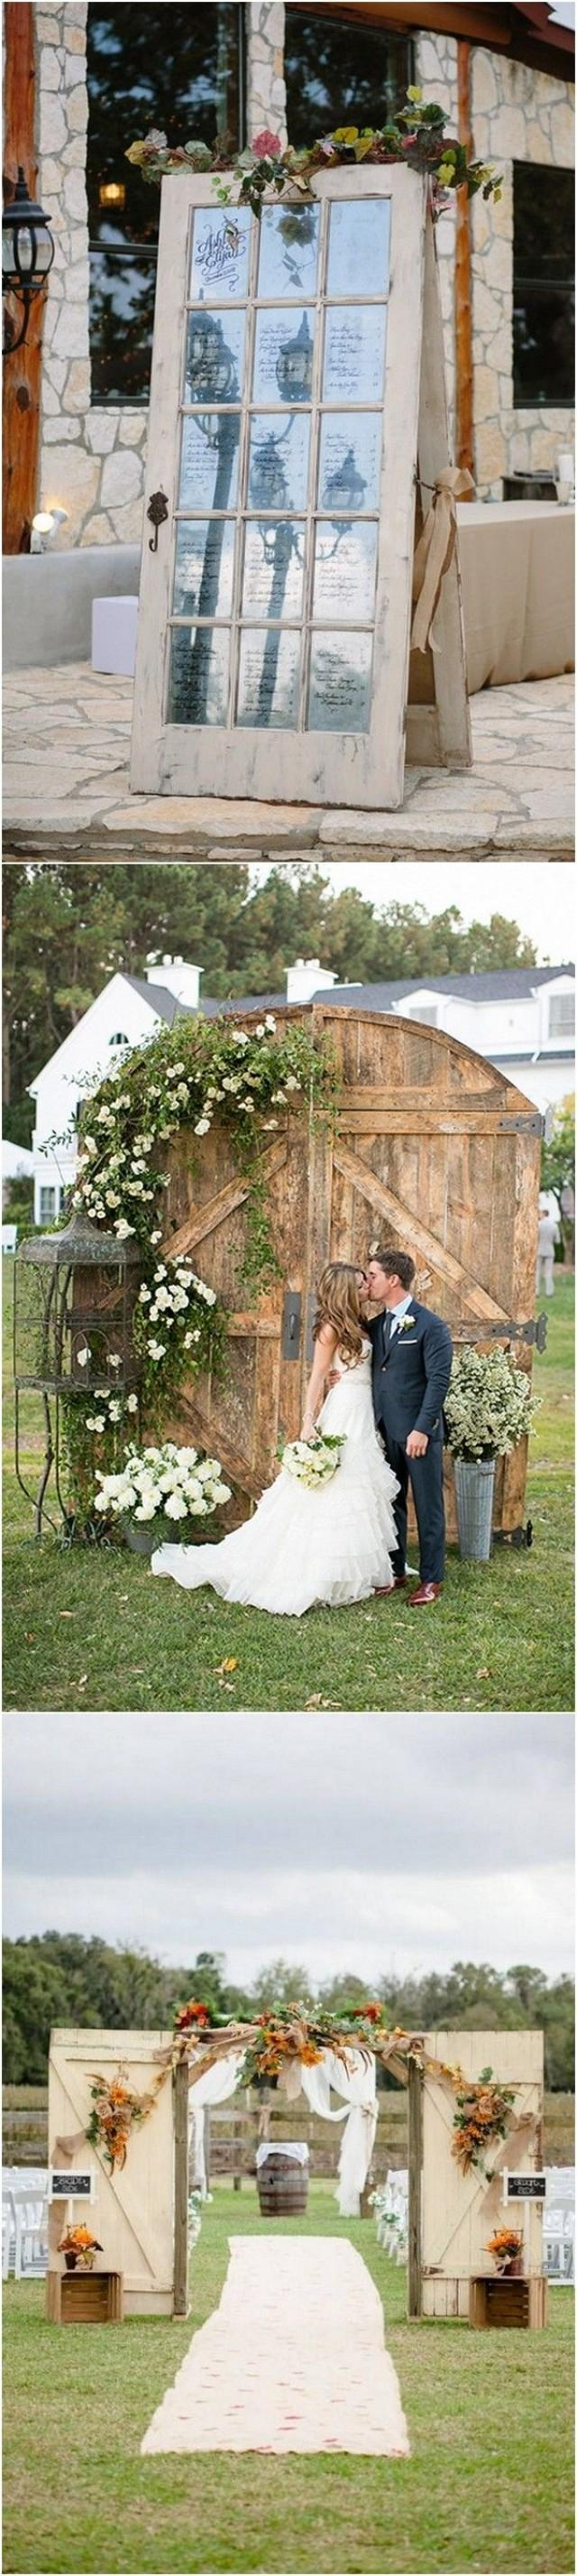 18 Wedding Decoration Ideas With Vintage Old Doors #2792740 ...